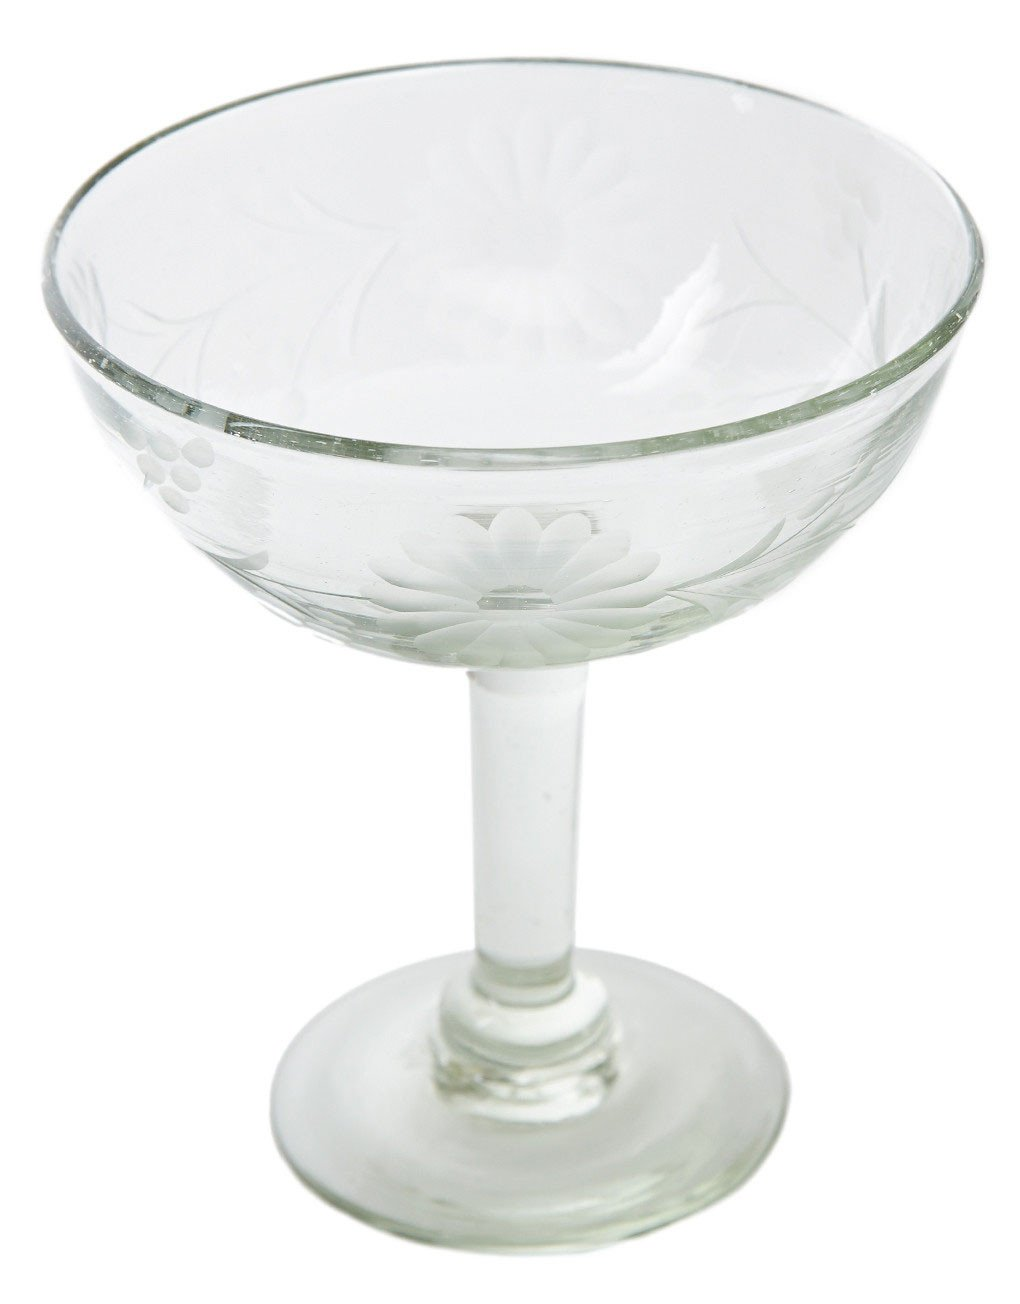 1020x1304 Hand Etched Recycled Margarita Glass, Fair Trade Clear